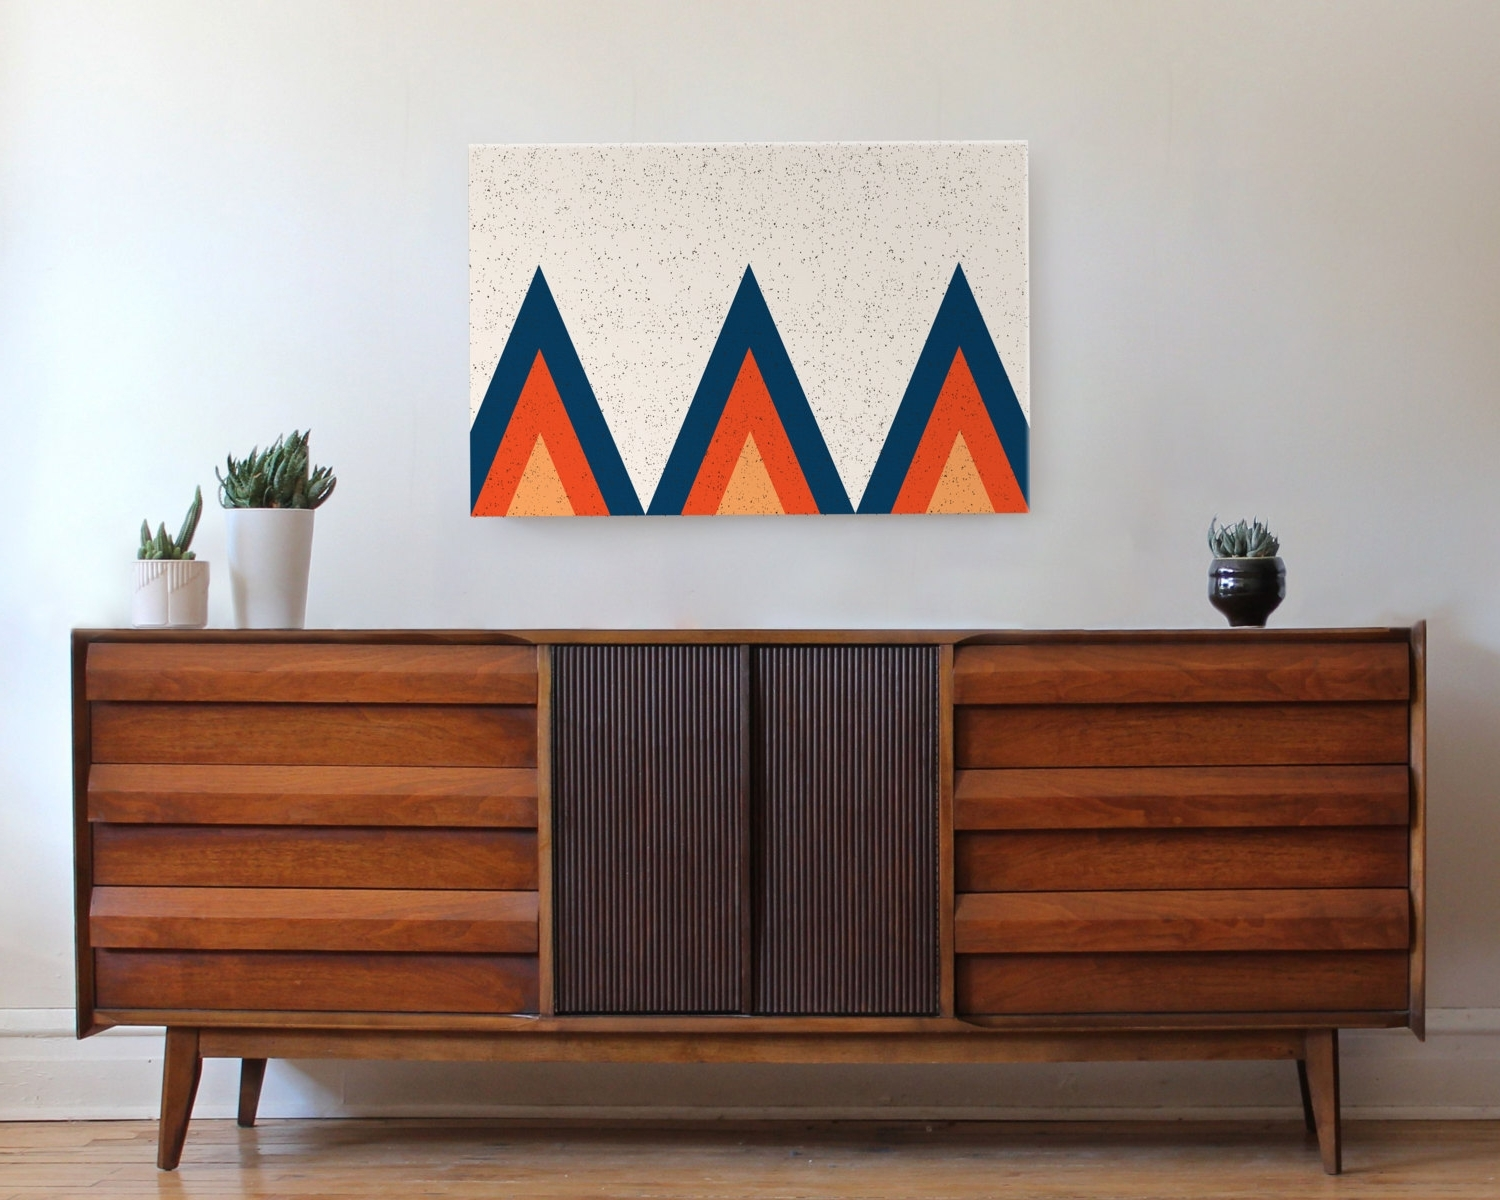 Best Mid Century Modern Wall Art : Andrews Living Arts – Photo Regarding Well Liked Mid Century Wall Art (View 1 of 15)